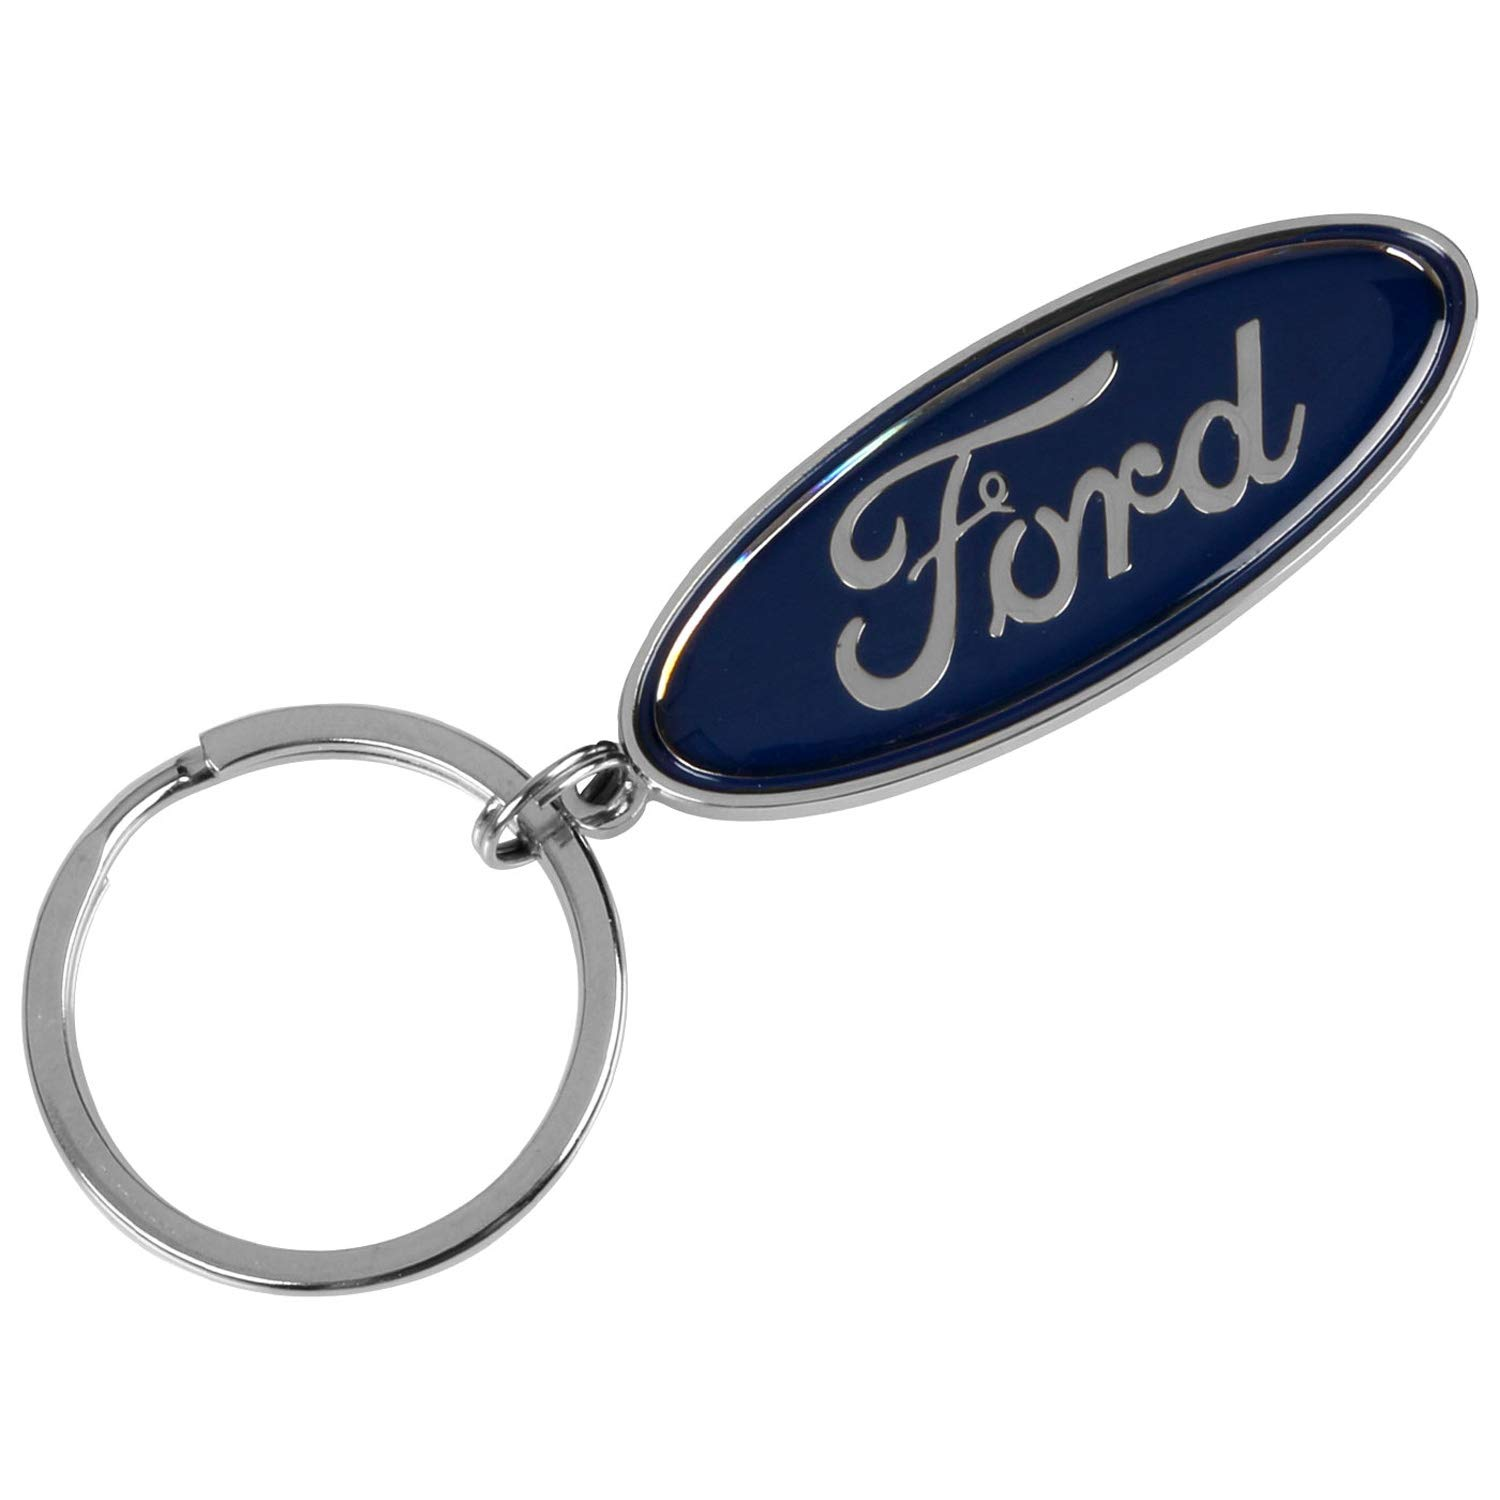 Compatible with Ford Blue Oval Key Chain Ring Fob with Racing Decal